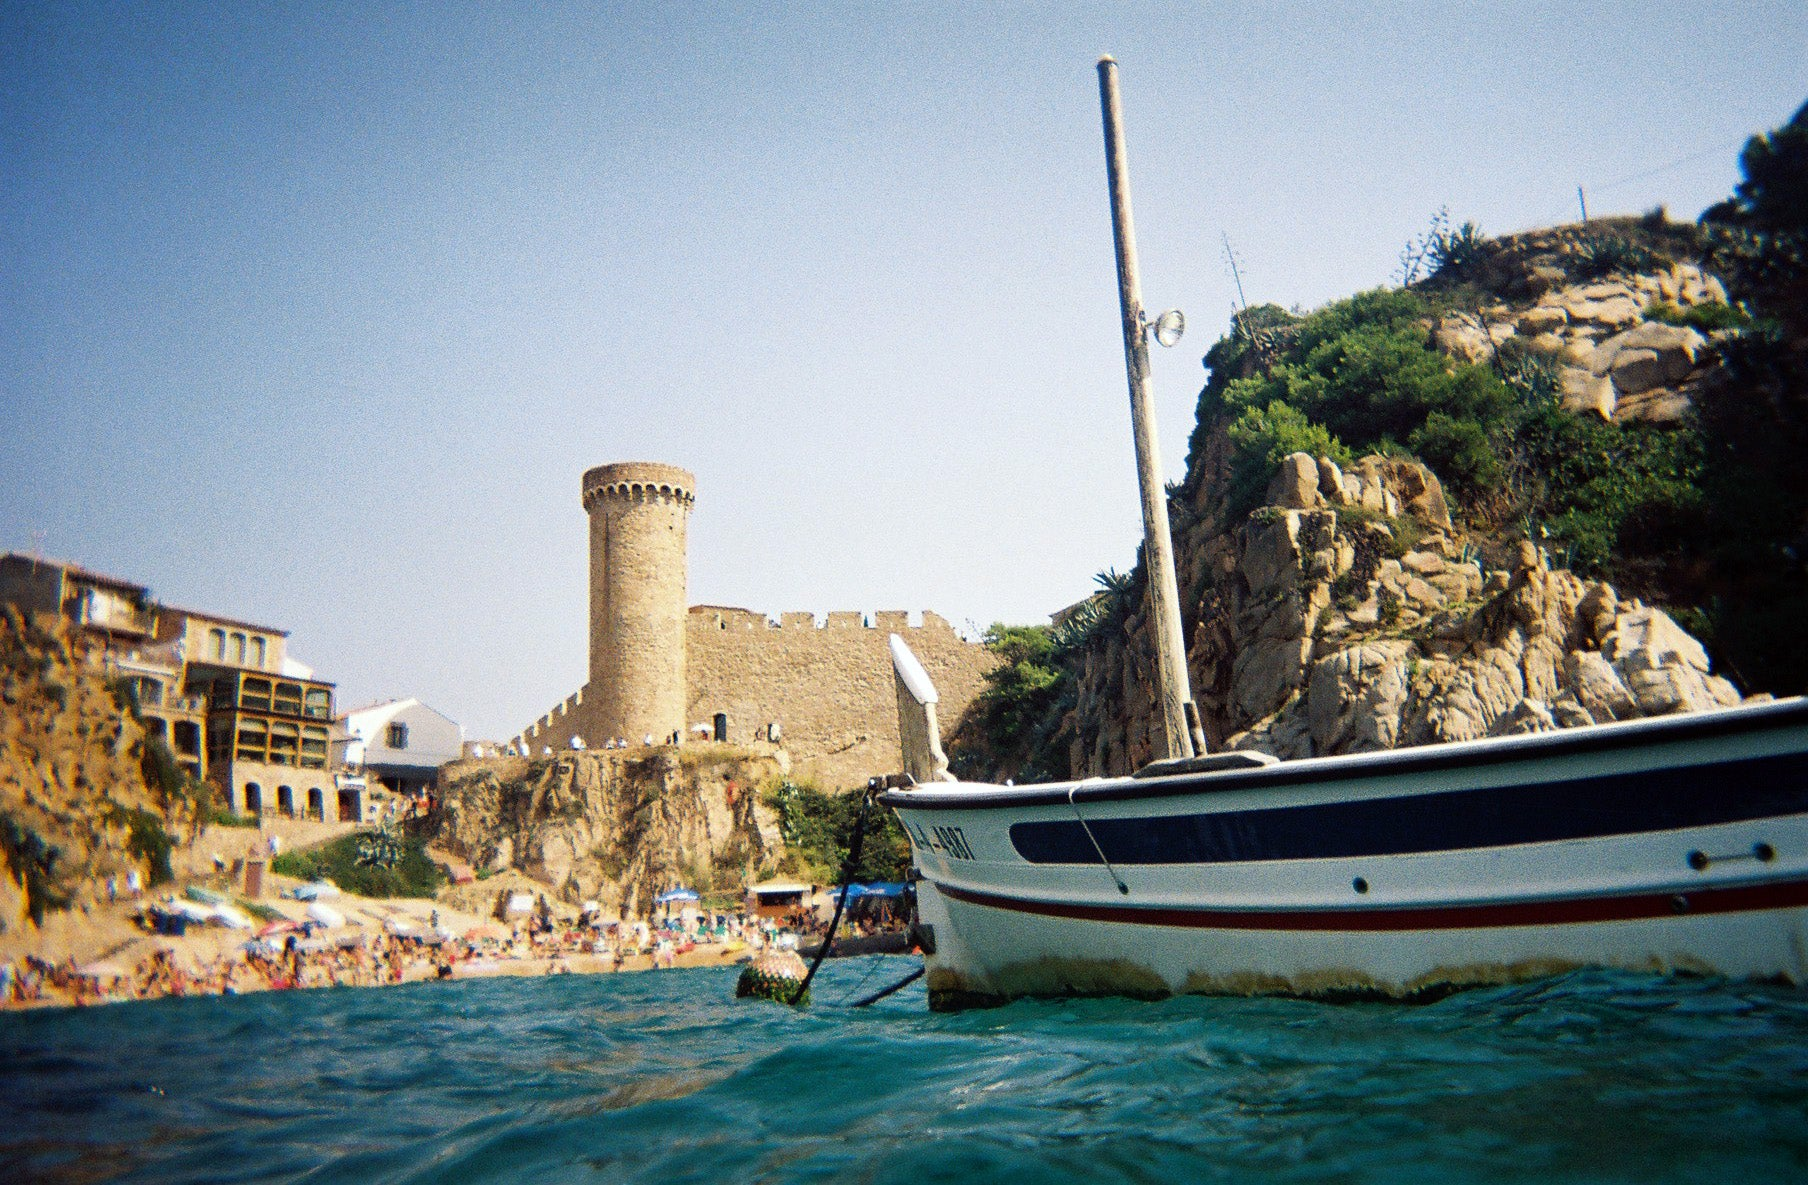 The Castle of Tossa de Mar